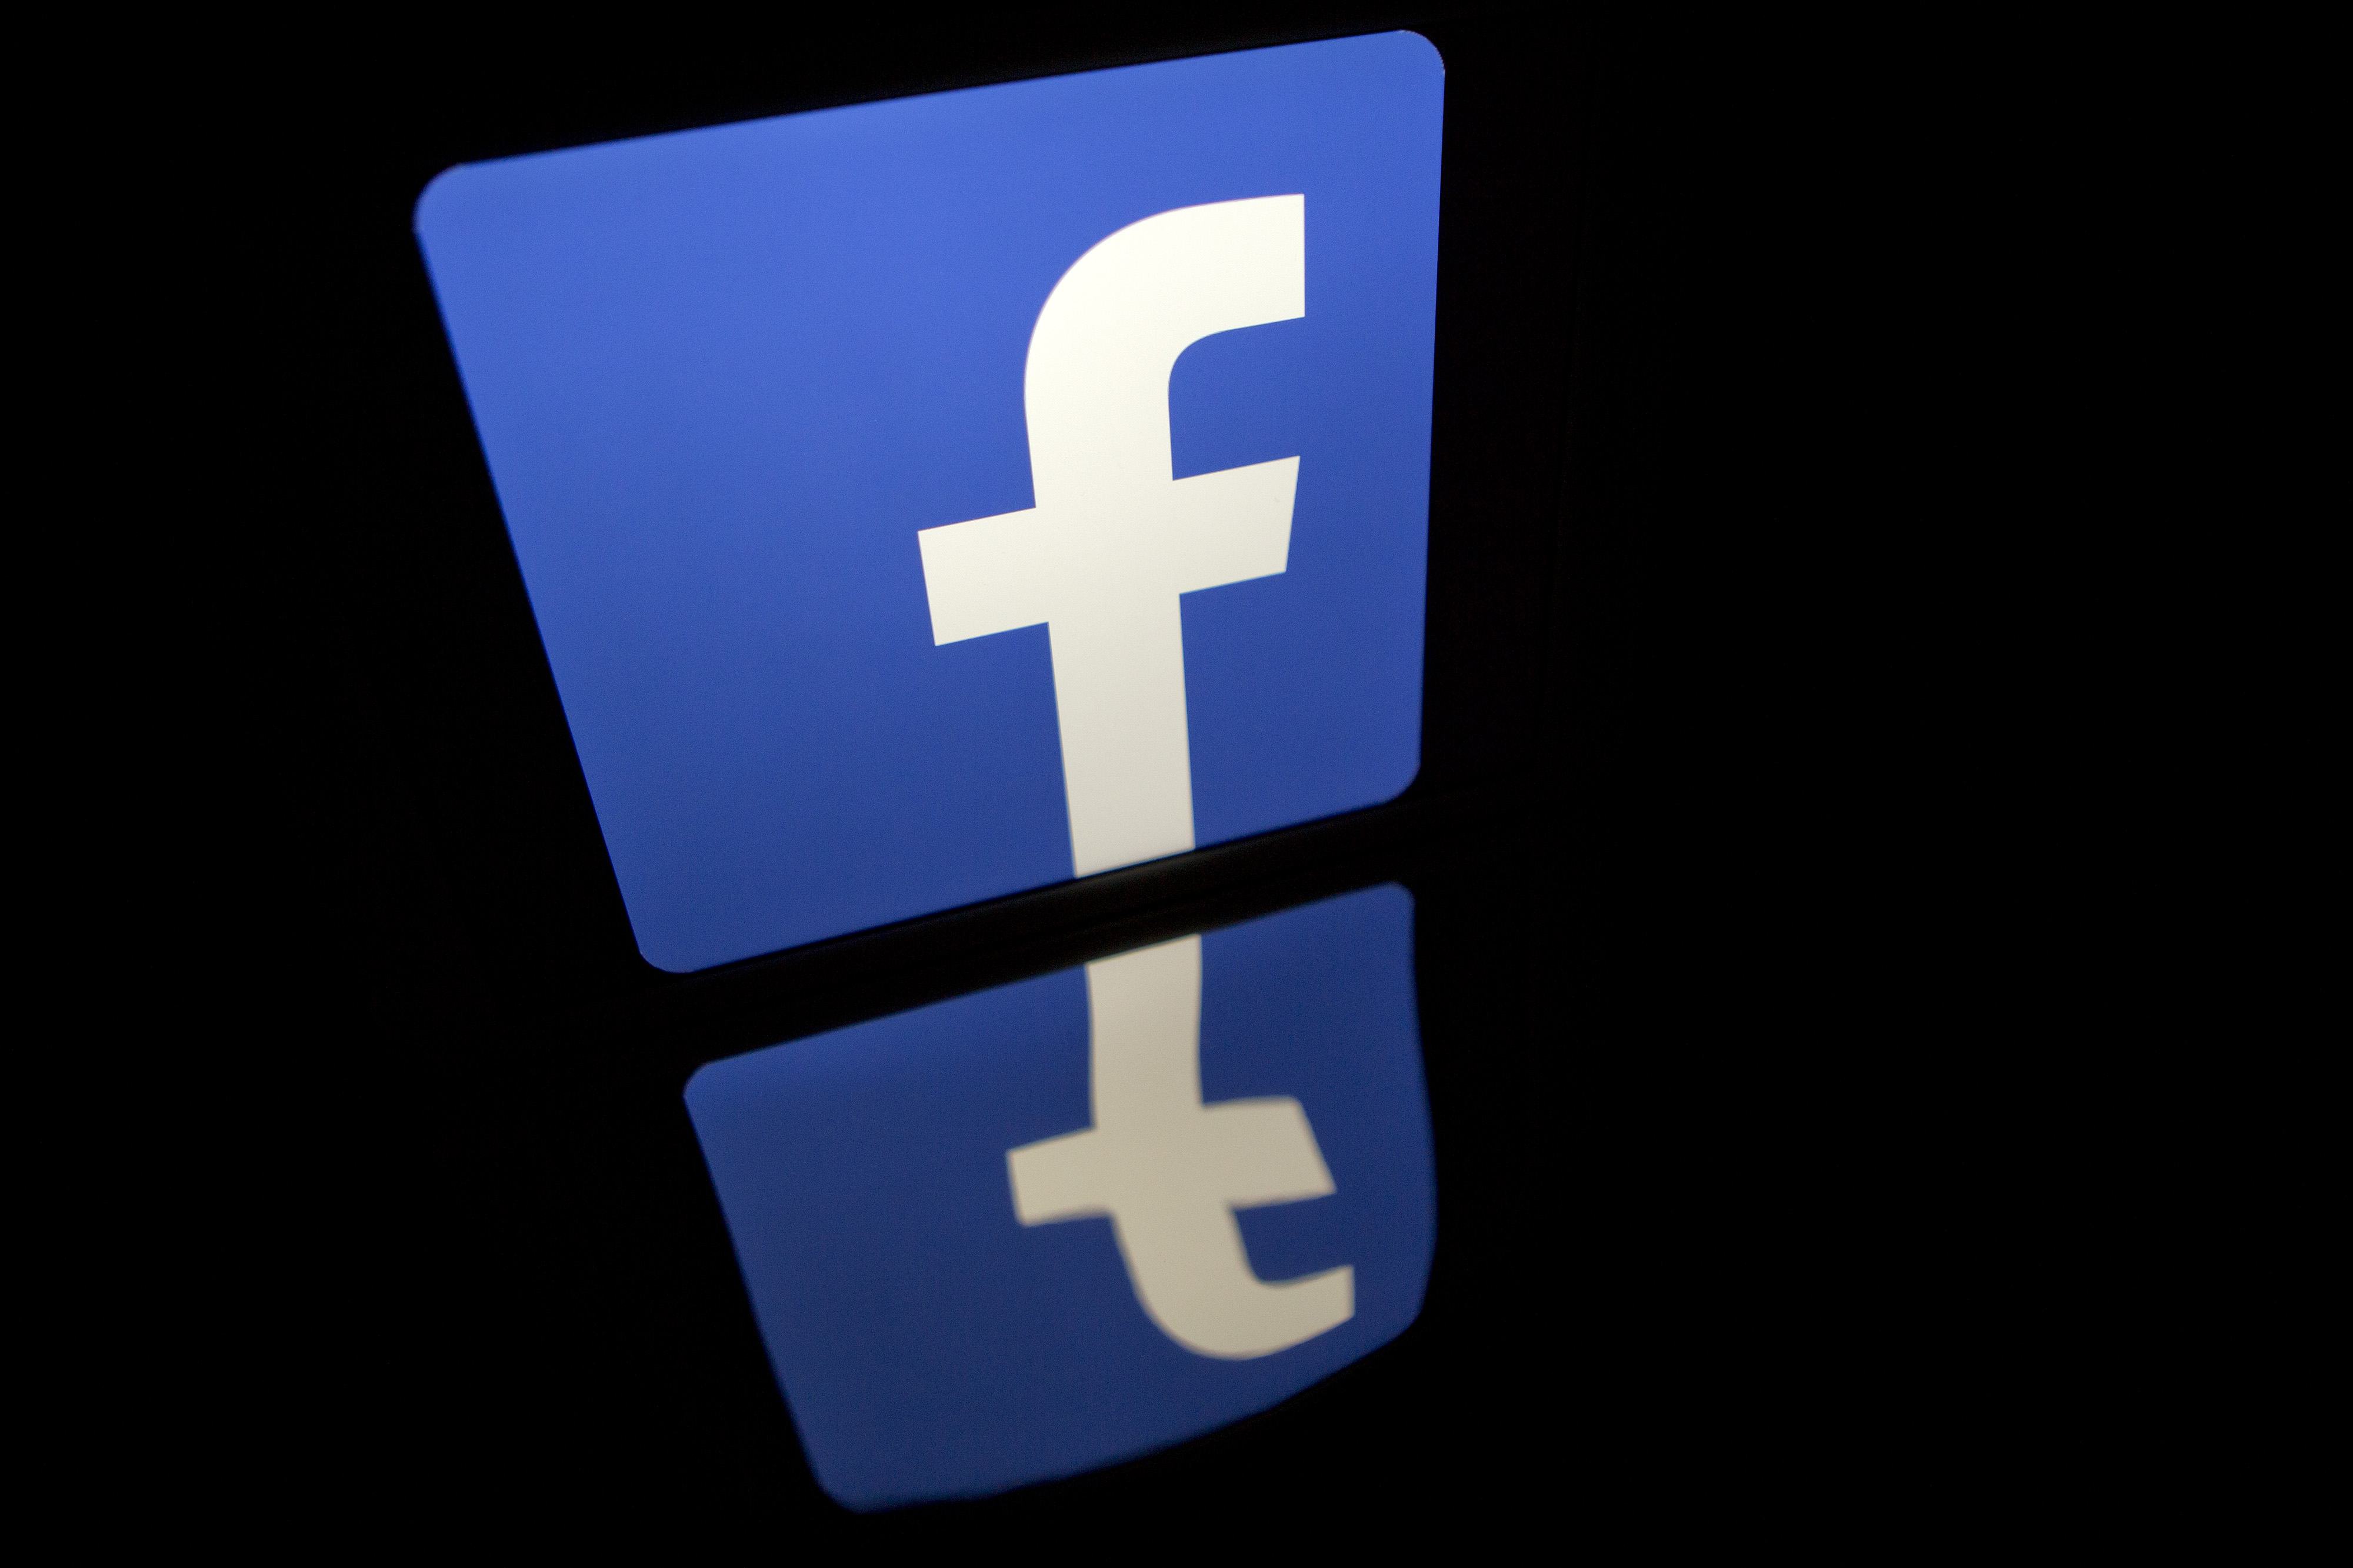 When you facebook with happens in sign What are